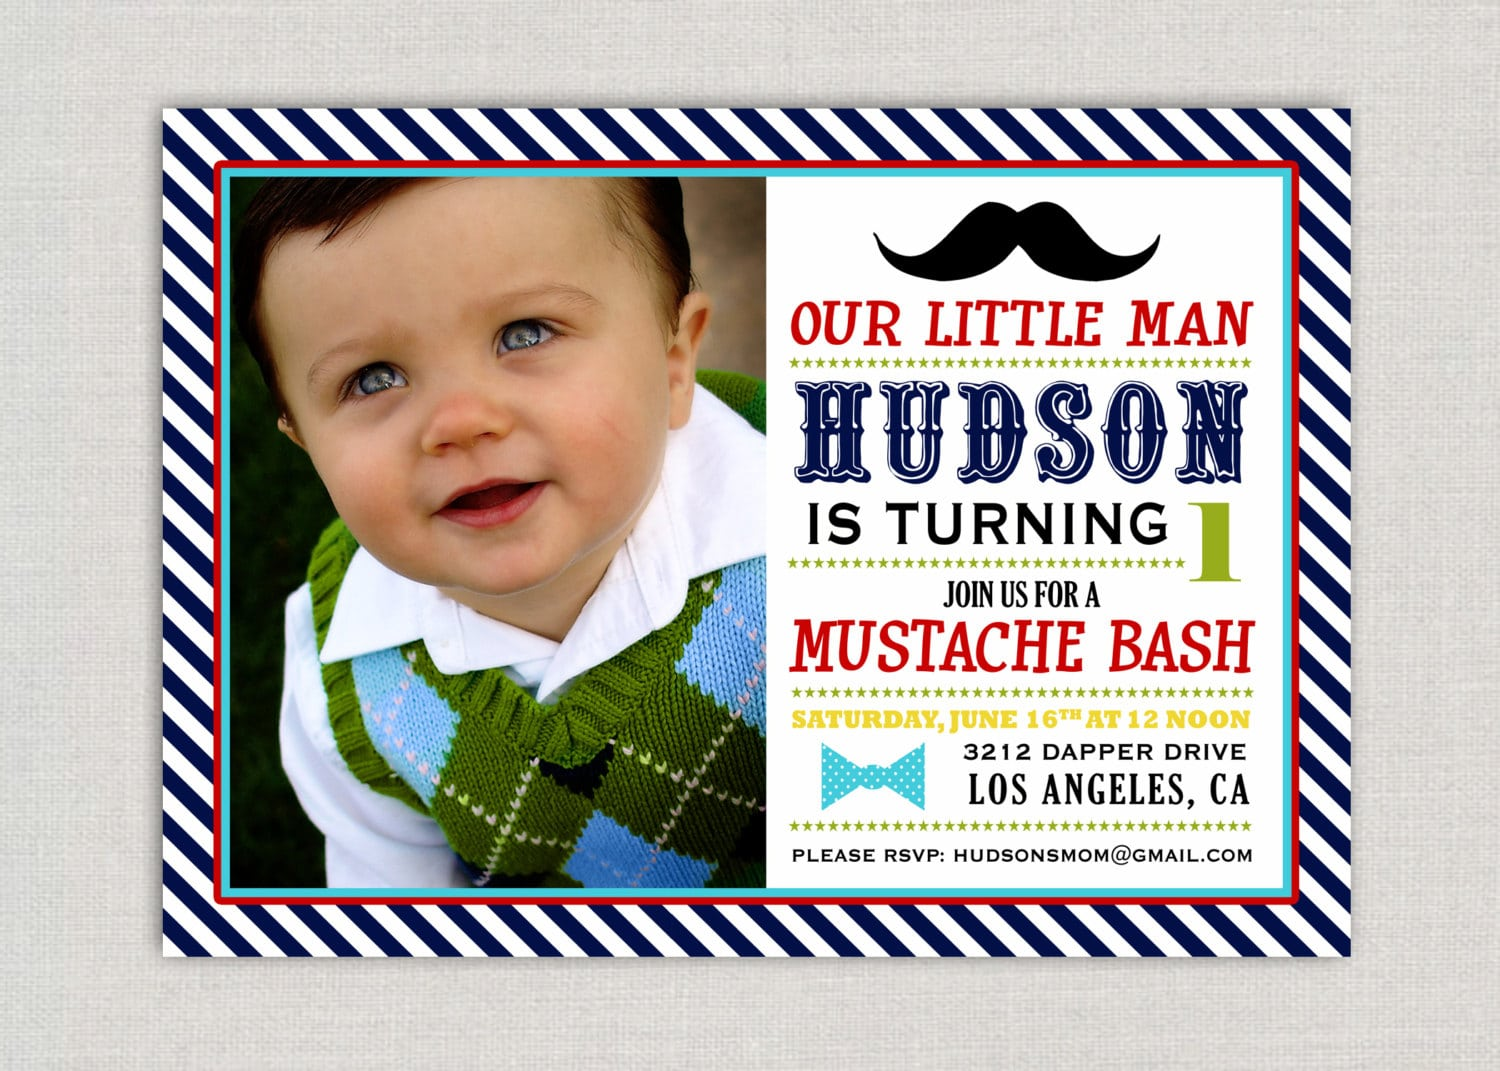 Little Man Birthday Party Invitations - Mickey Mouse Invitations ...